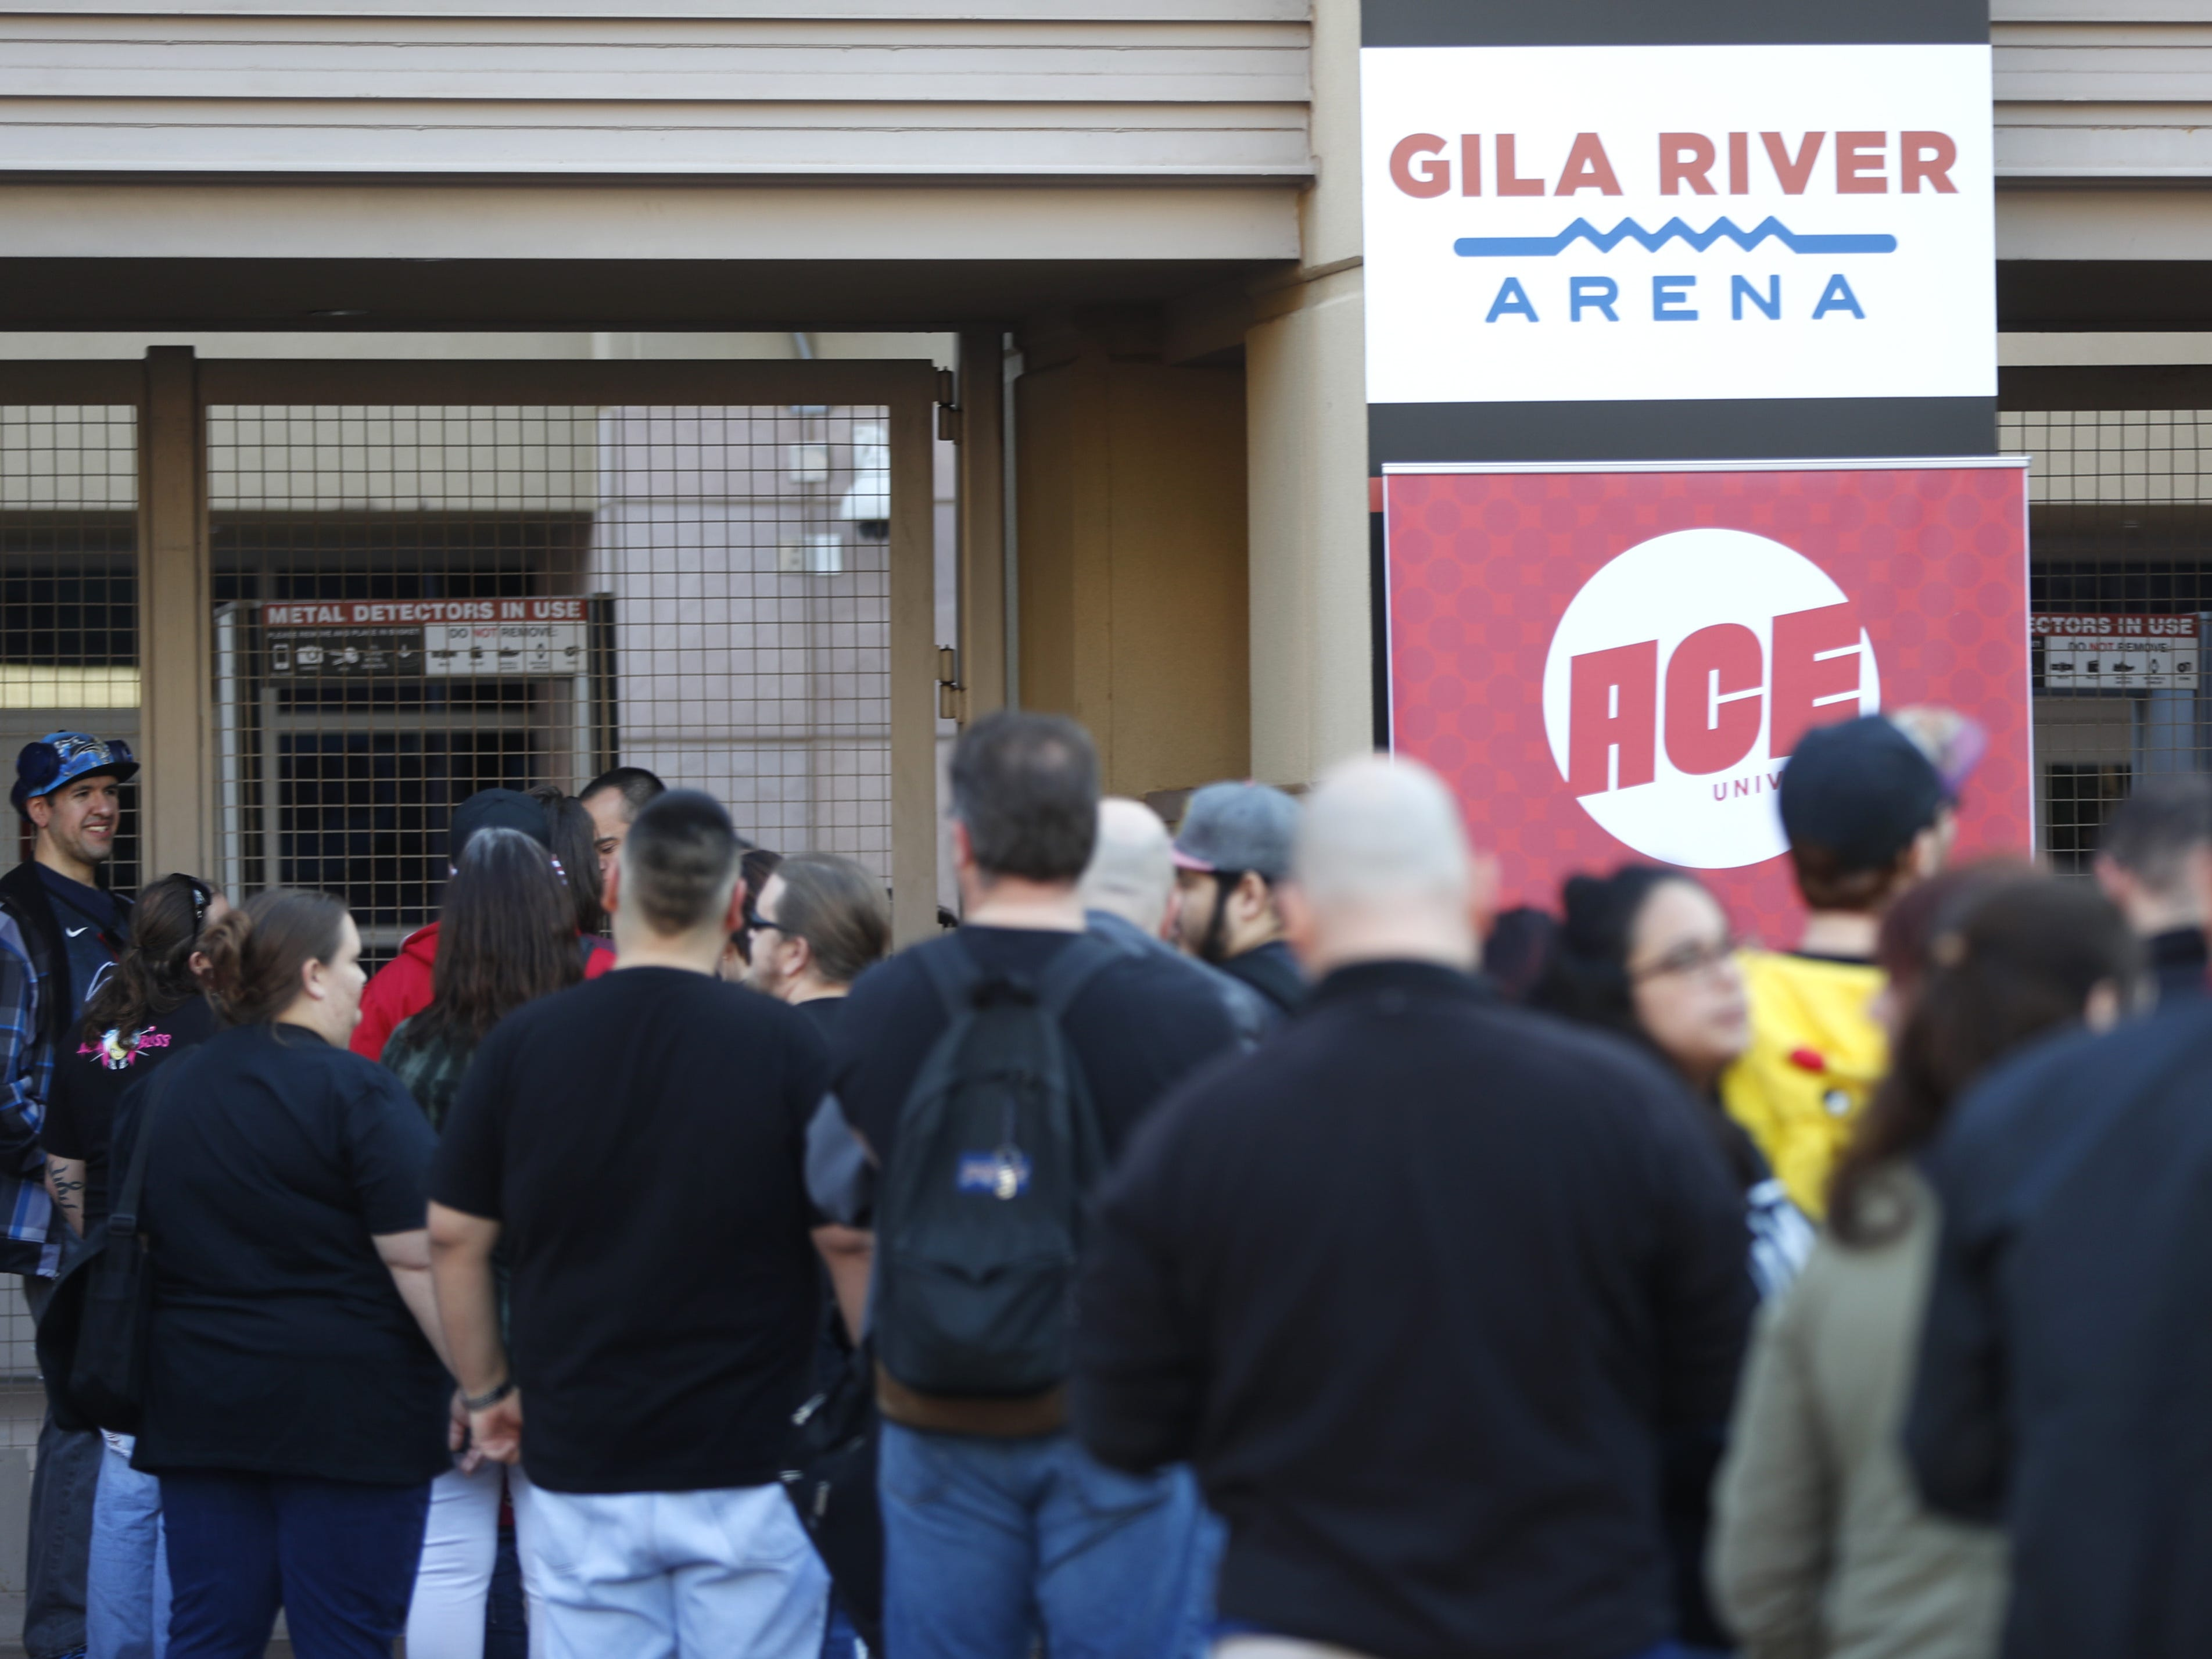 People arrive and wait for gates to open on the opening day of Ace Comic Con 2019 at Gila River Arena in Glendale, Ariz. on Jan. 11, 2019.